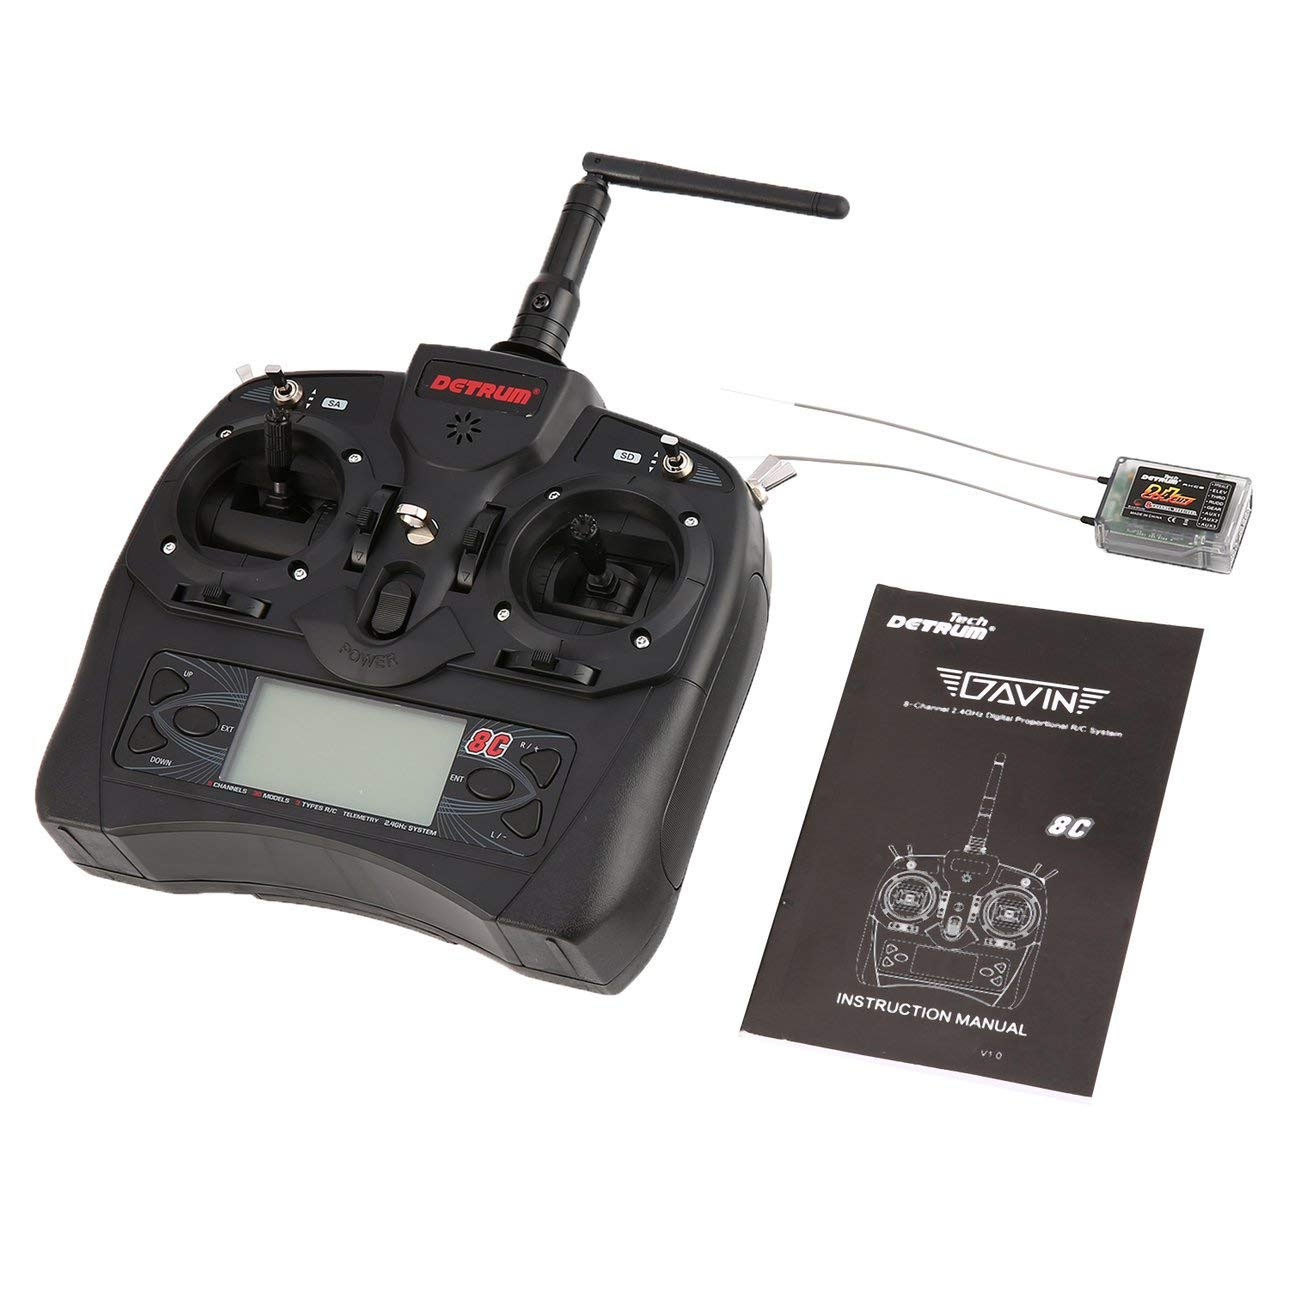 Liobaba Detrum GAVIN-8C 2.4G DSSS FHSS 8 Channels Remote Control RXC8 Fixed Wing Meteorite Stabilization Receiver DTM-T007